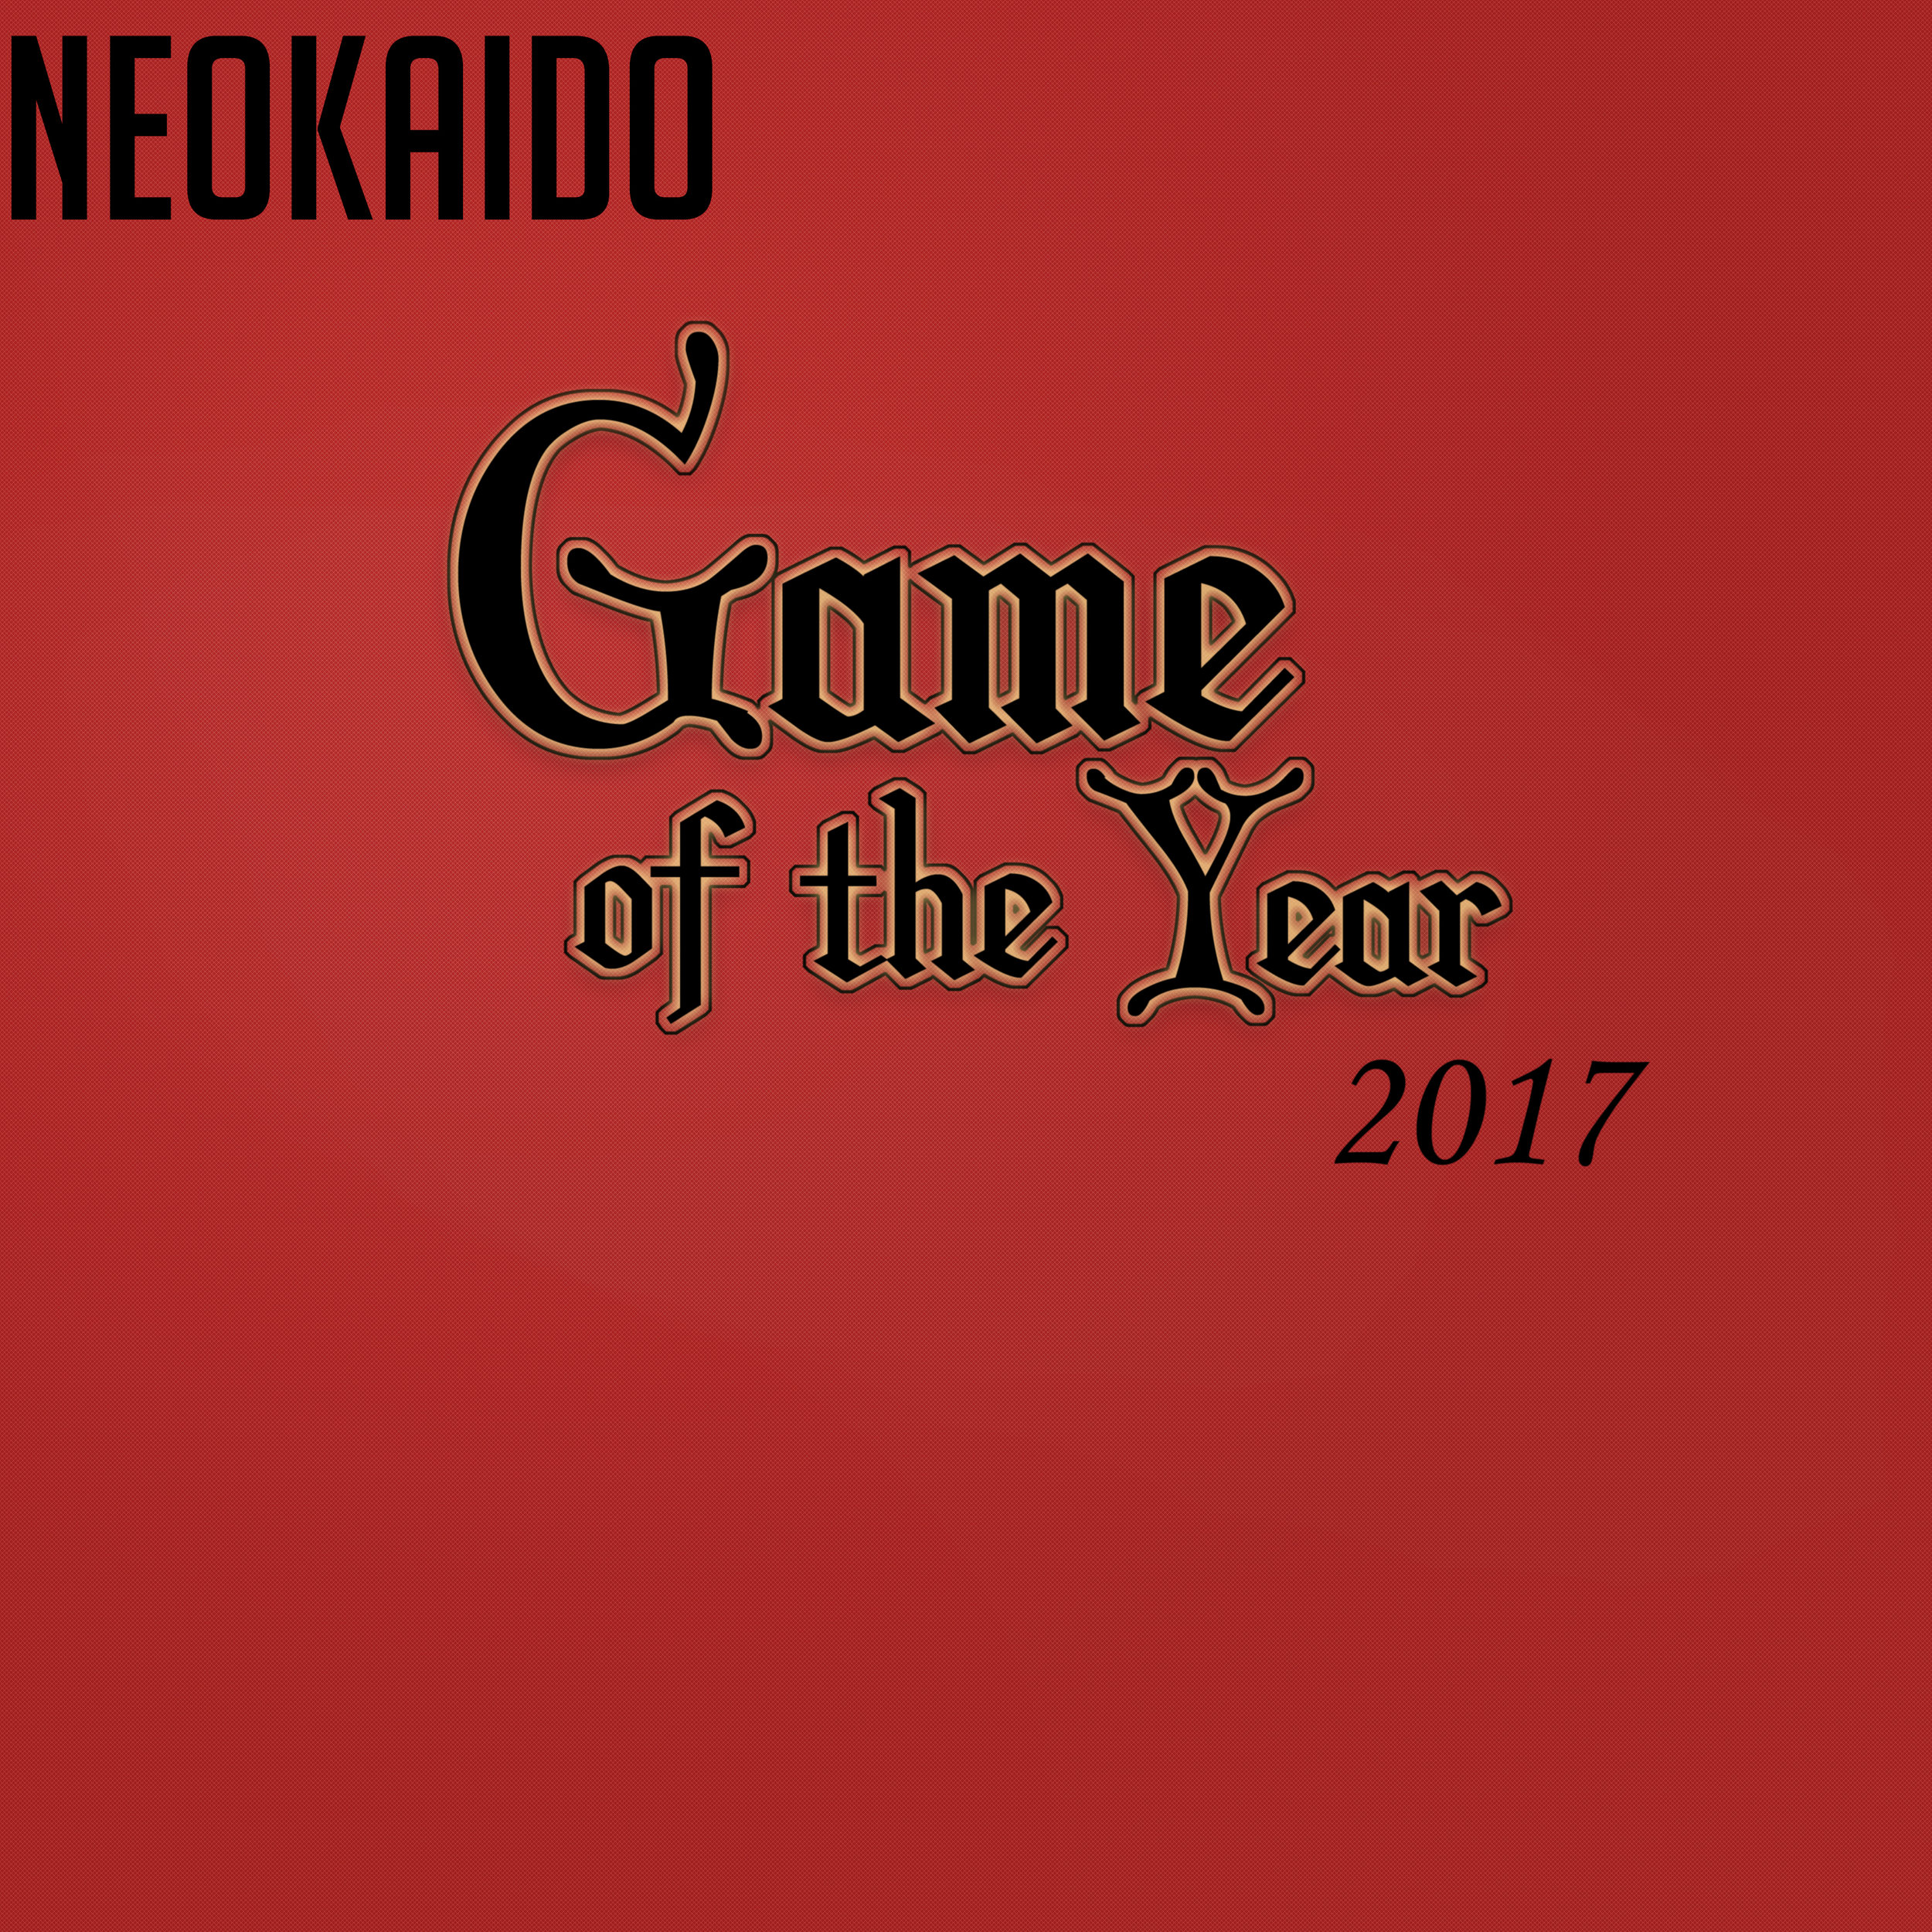 Neokaido Game of the Year 2017 (Part 1) - Spend Christmas with us, discussing Best Dressed, Best Sound Design, Something to Play, Best Performance, and Best Moment.